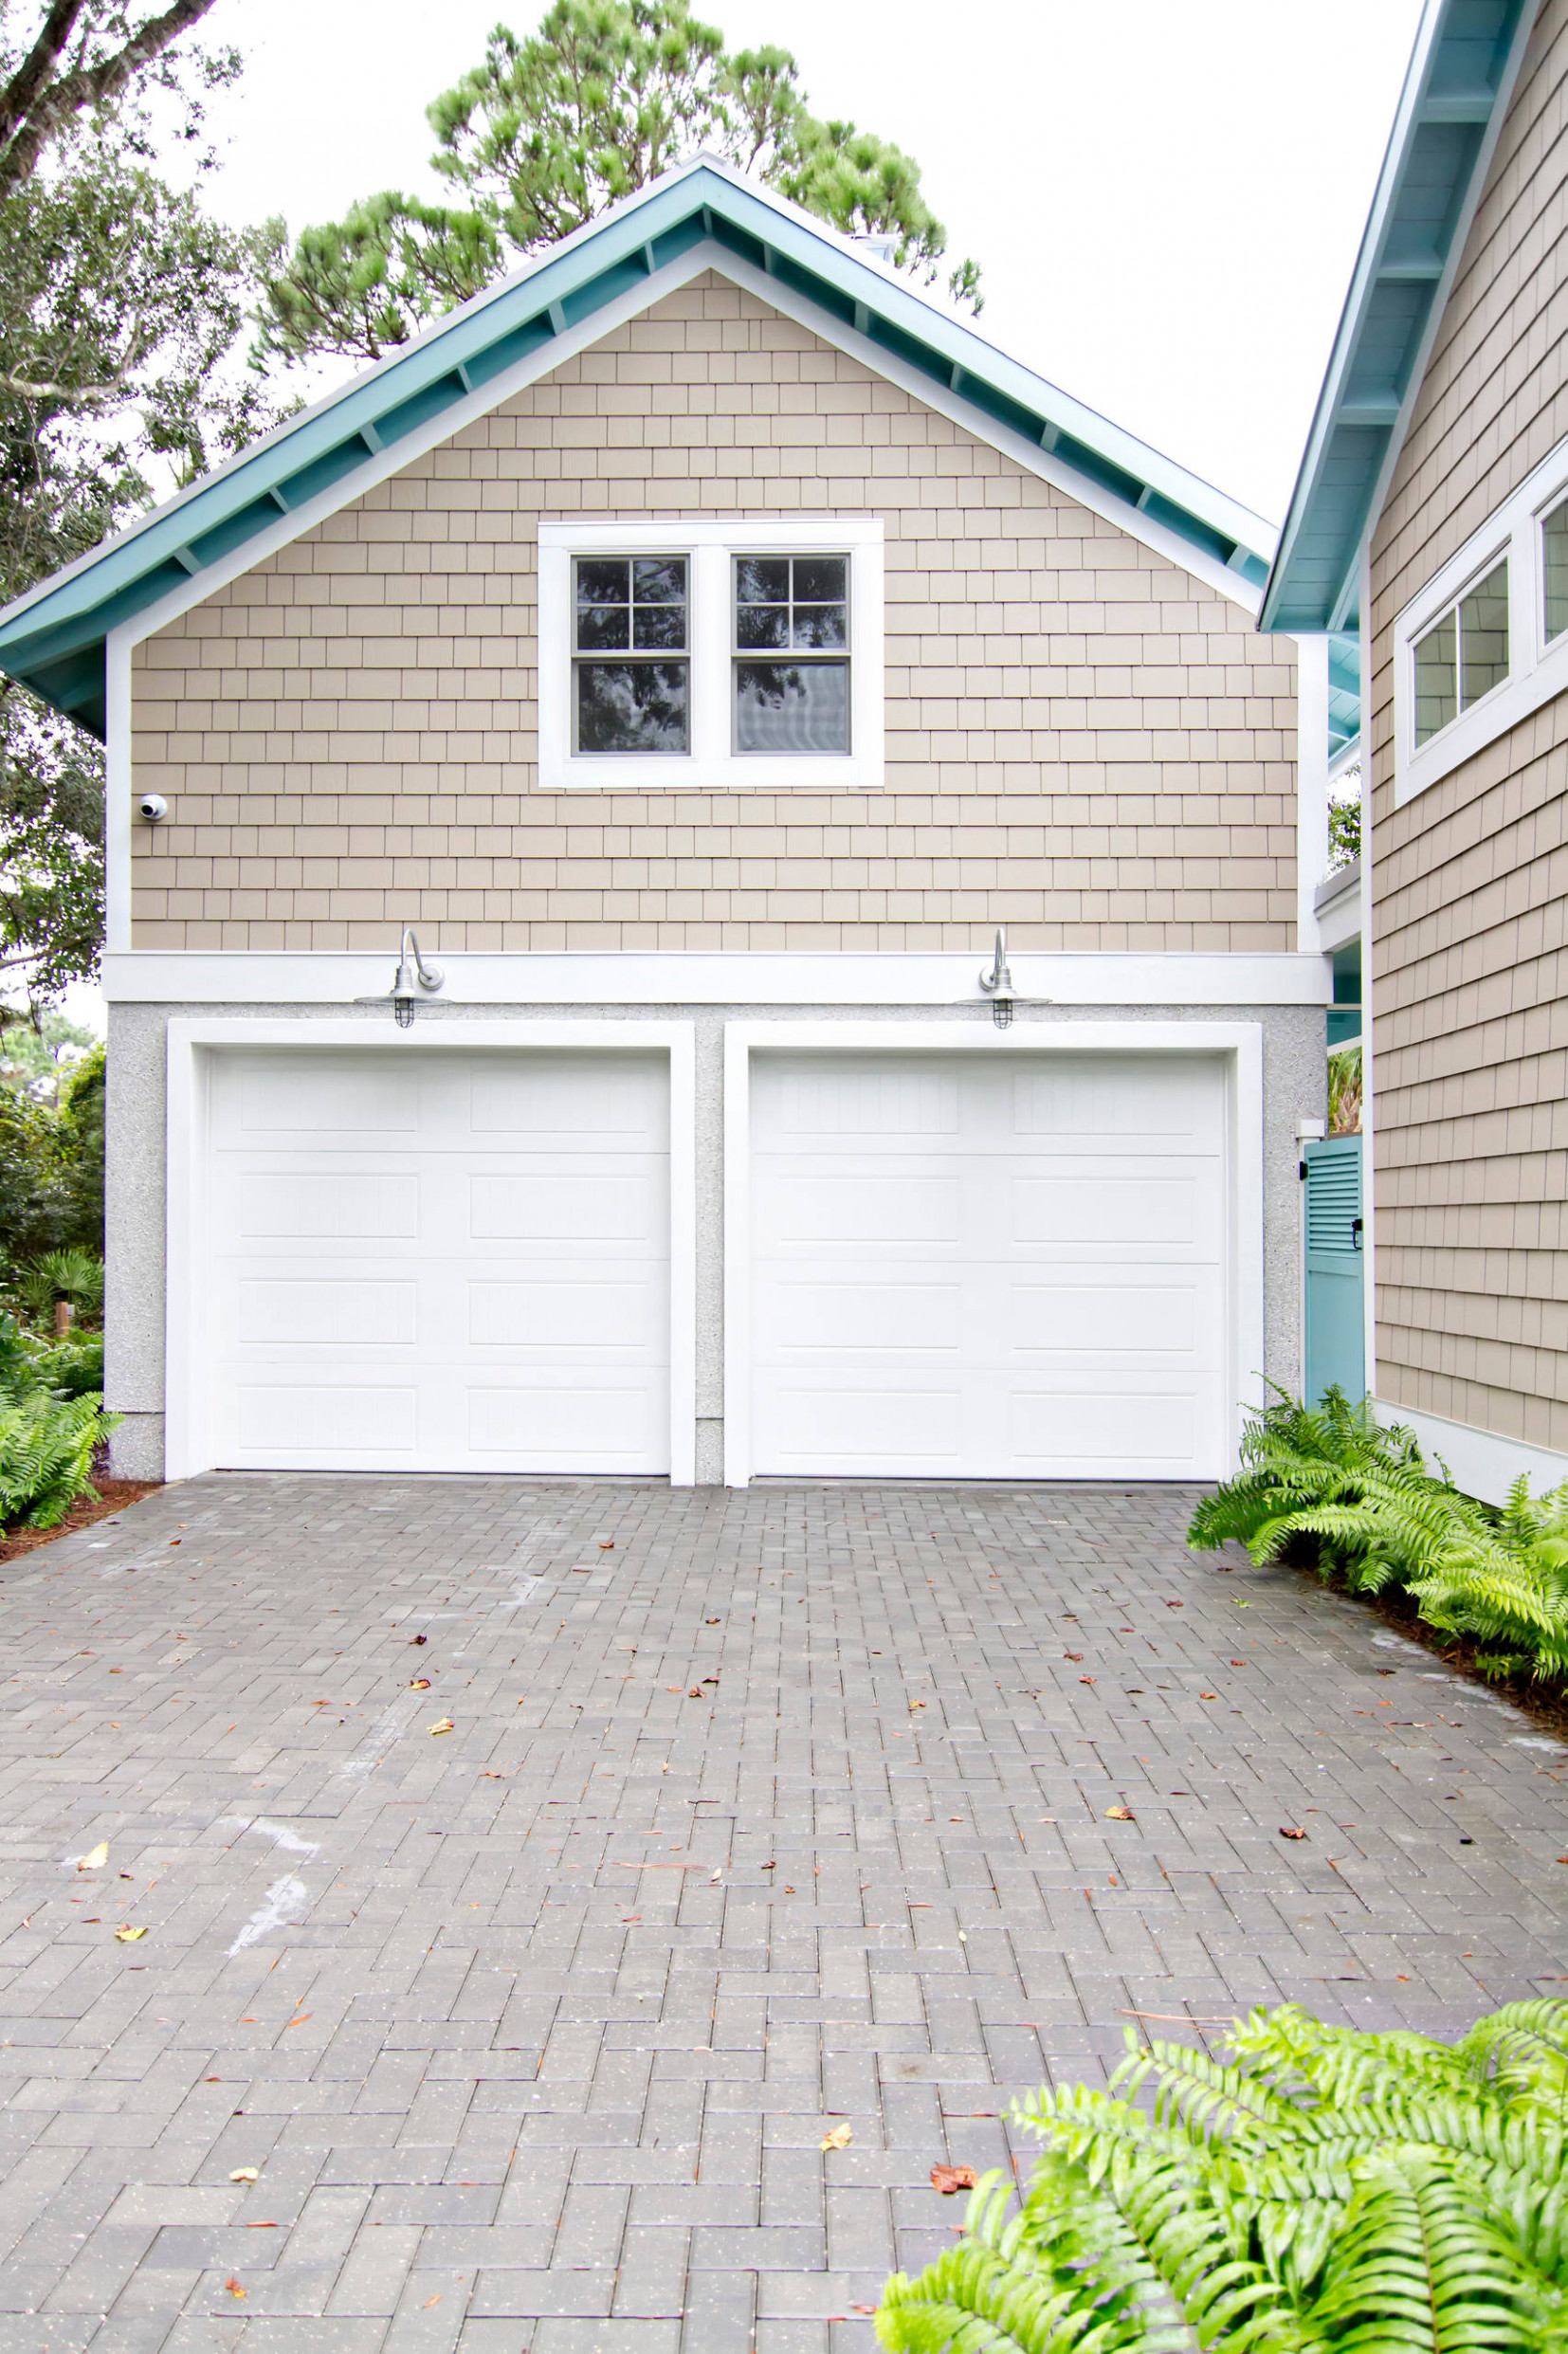 9 Beautiful Carport Pictures & Ideas | Houzz Carports Decorating Youtube